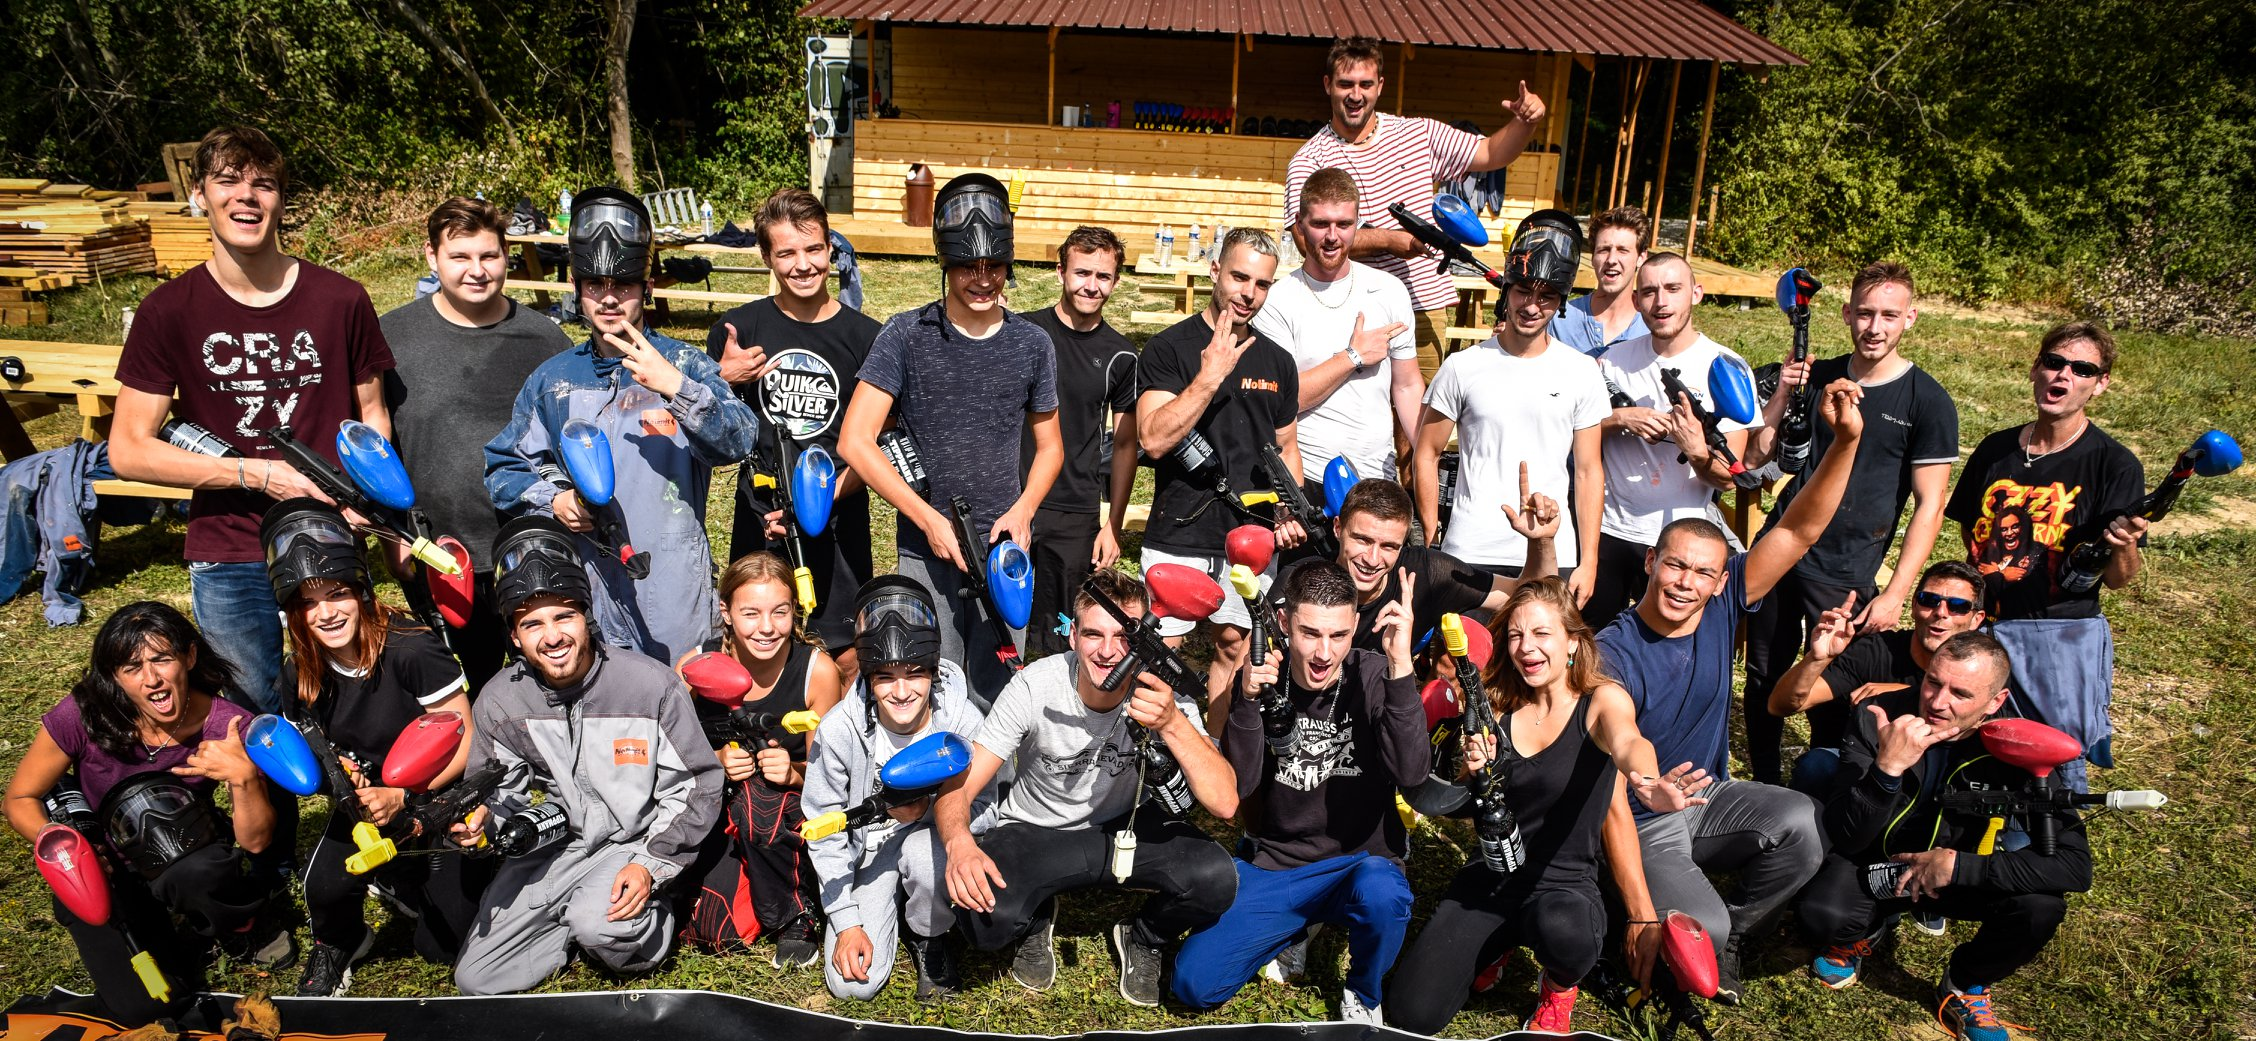 club paintball 77